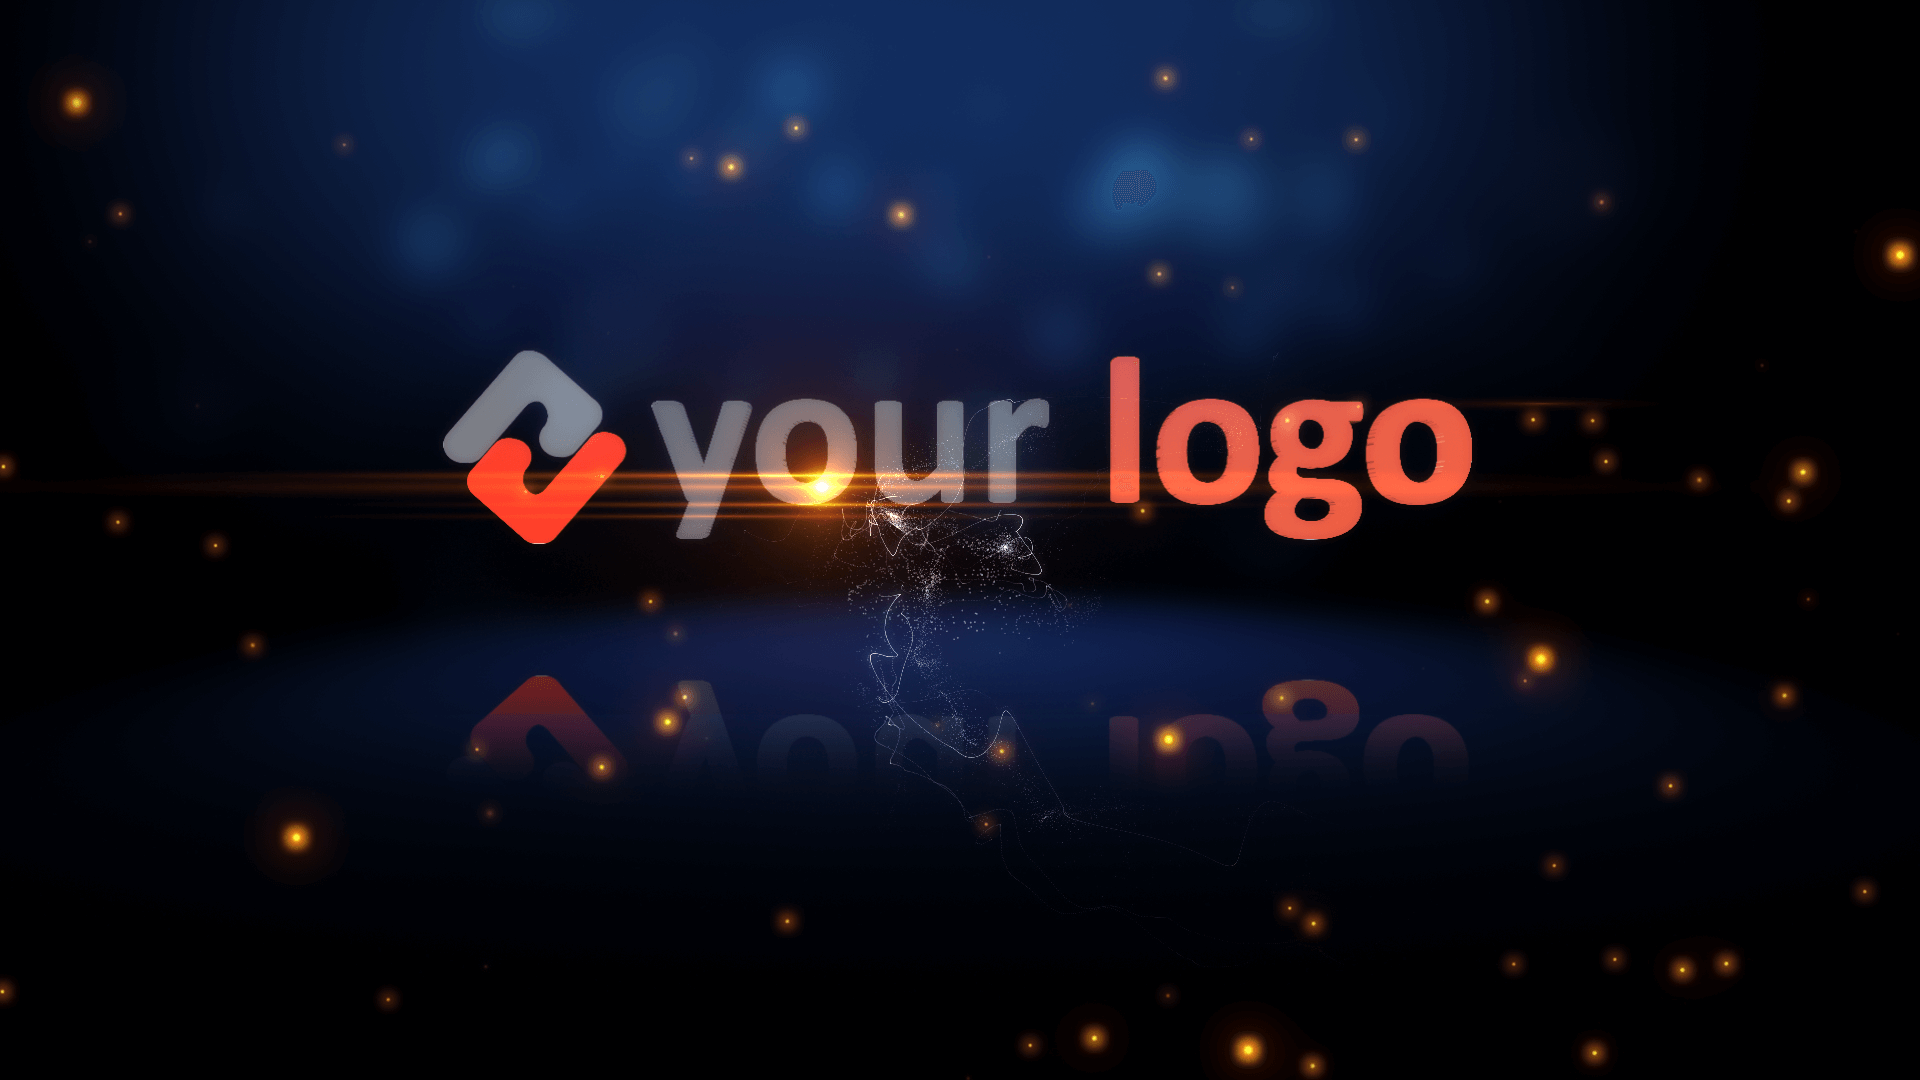 Customize Particle Union - Logo with your own logo or image to view your free intro movie.